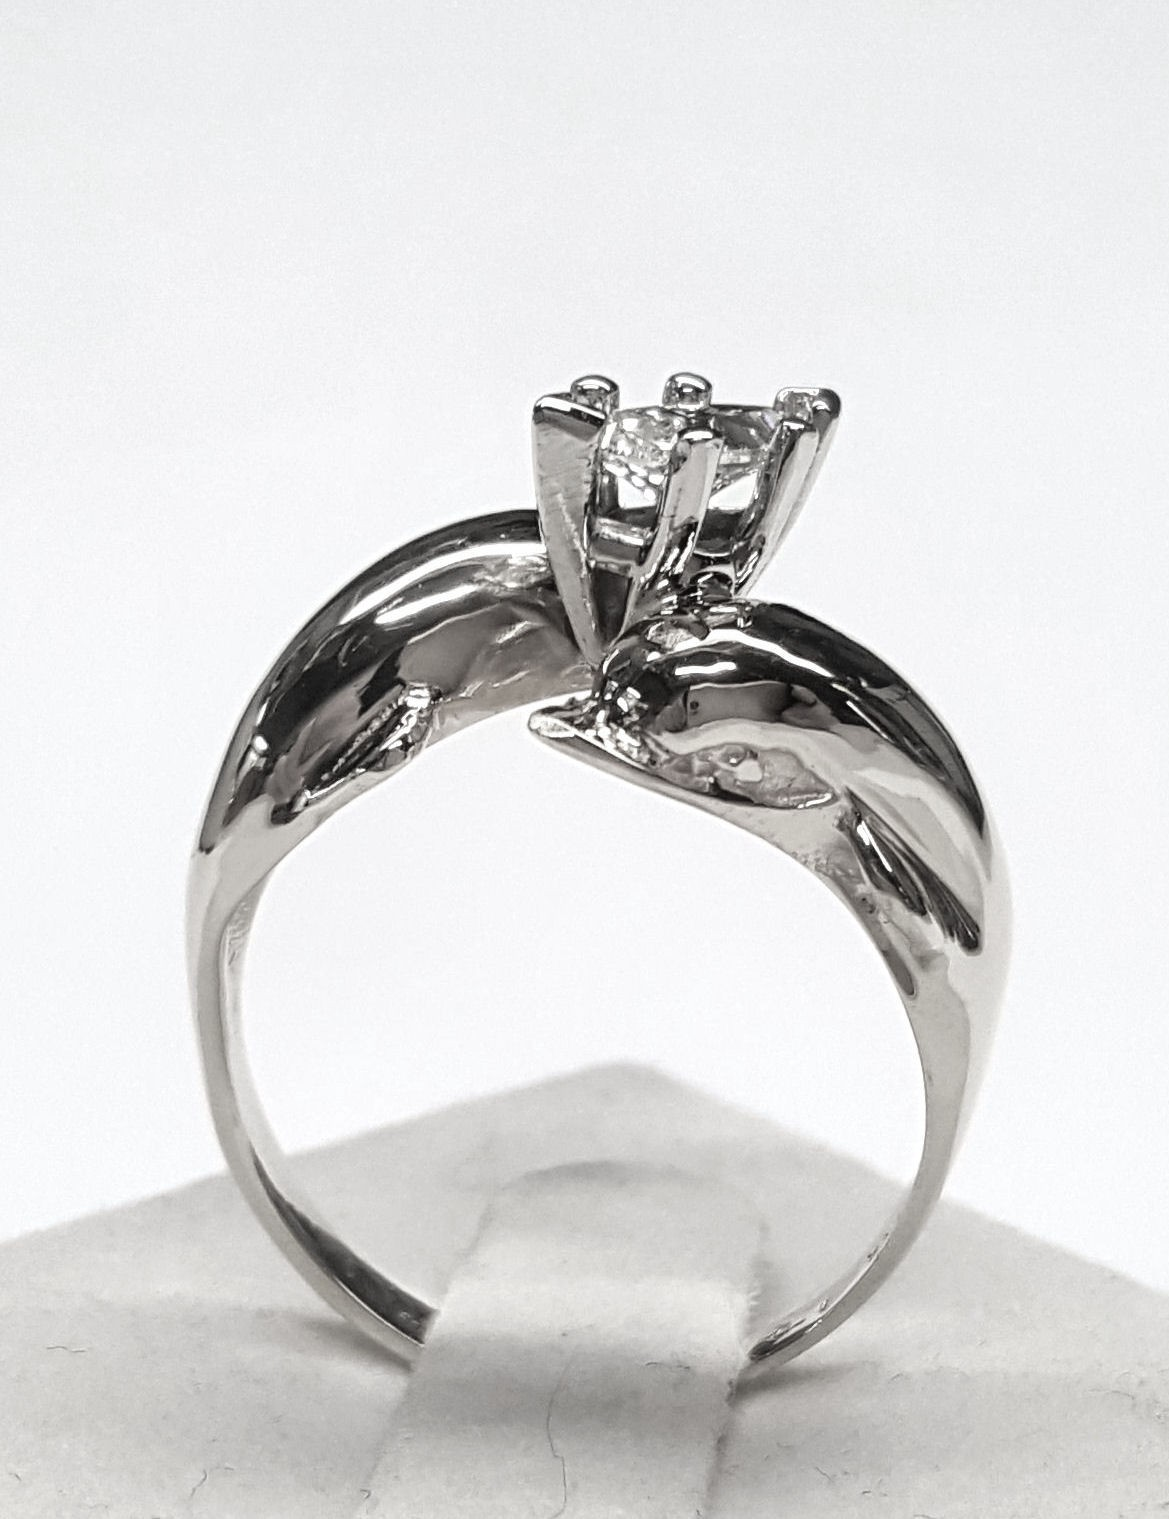 marquise center diamond double dolphin engagement ring w 12ct marquise center diamond - Dolphin Wedding Rings